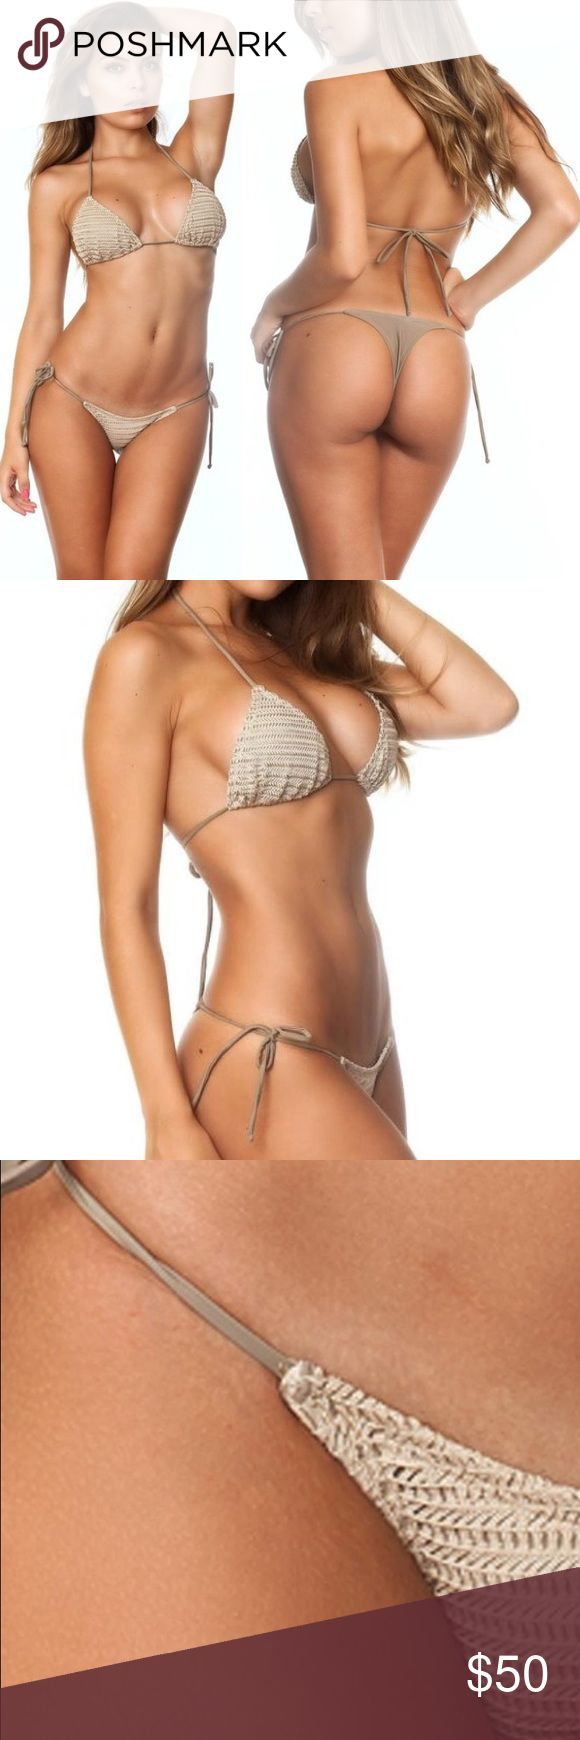 Coqueta BRAZILIAN Thong Bikini Crochet Triangle S This sexy bikini is a must have for your next resort vacation or day at the pool. Worn only once, the bikini is in perfect condition with no flaws. This is a great nude beige color that is flattering on all skin tones. True Brazilian fit so there isn't a ton of coverage. I am a 32DD and the top was smaller than I prefer so I'd recommend it for a smaller bust size, bottoms are adjustable and would best fit a 0-4.   Made in USA Triangle Top…